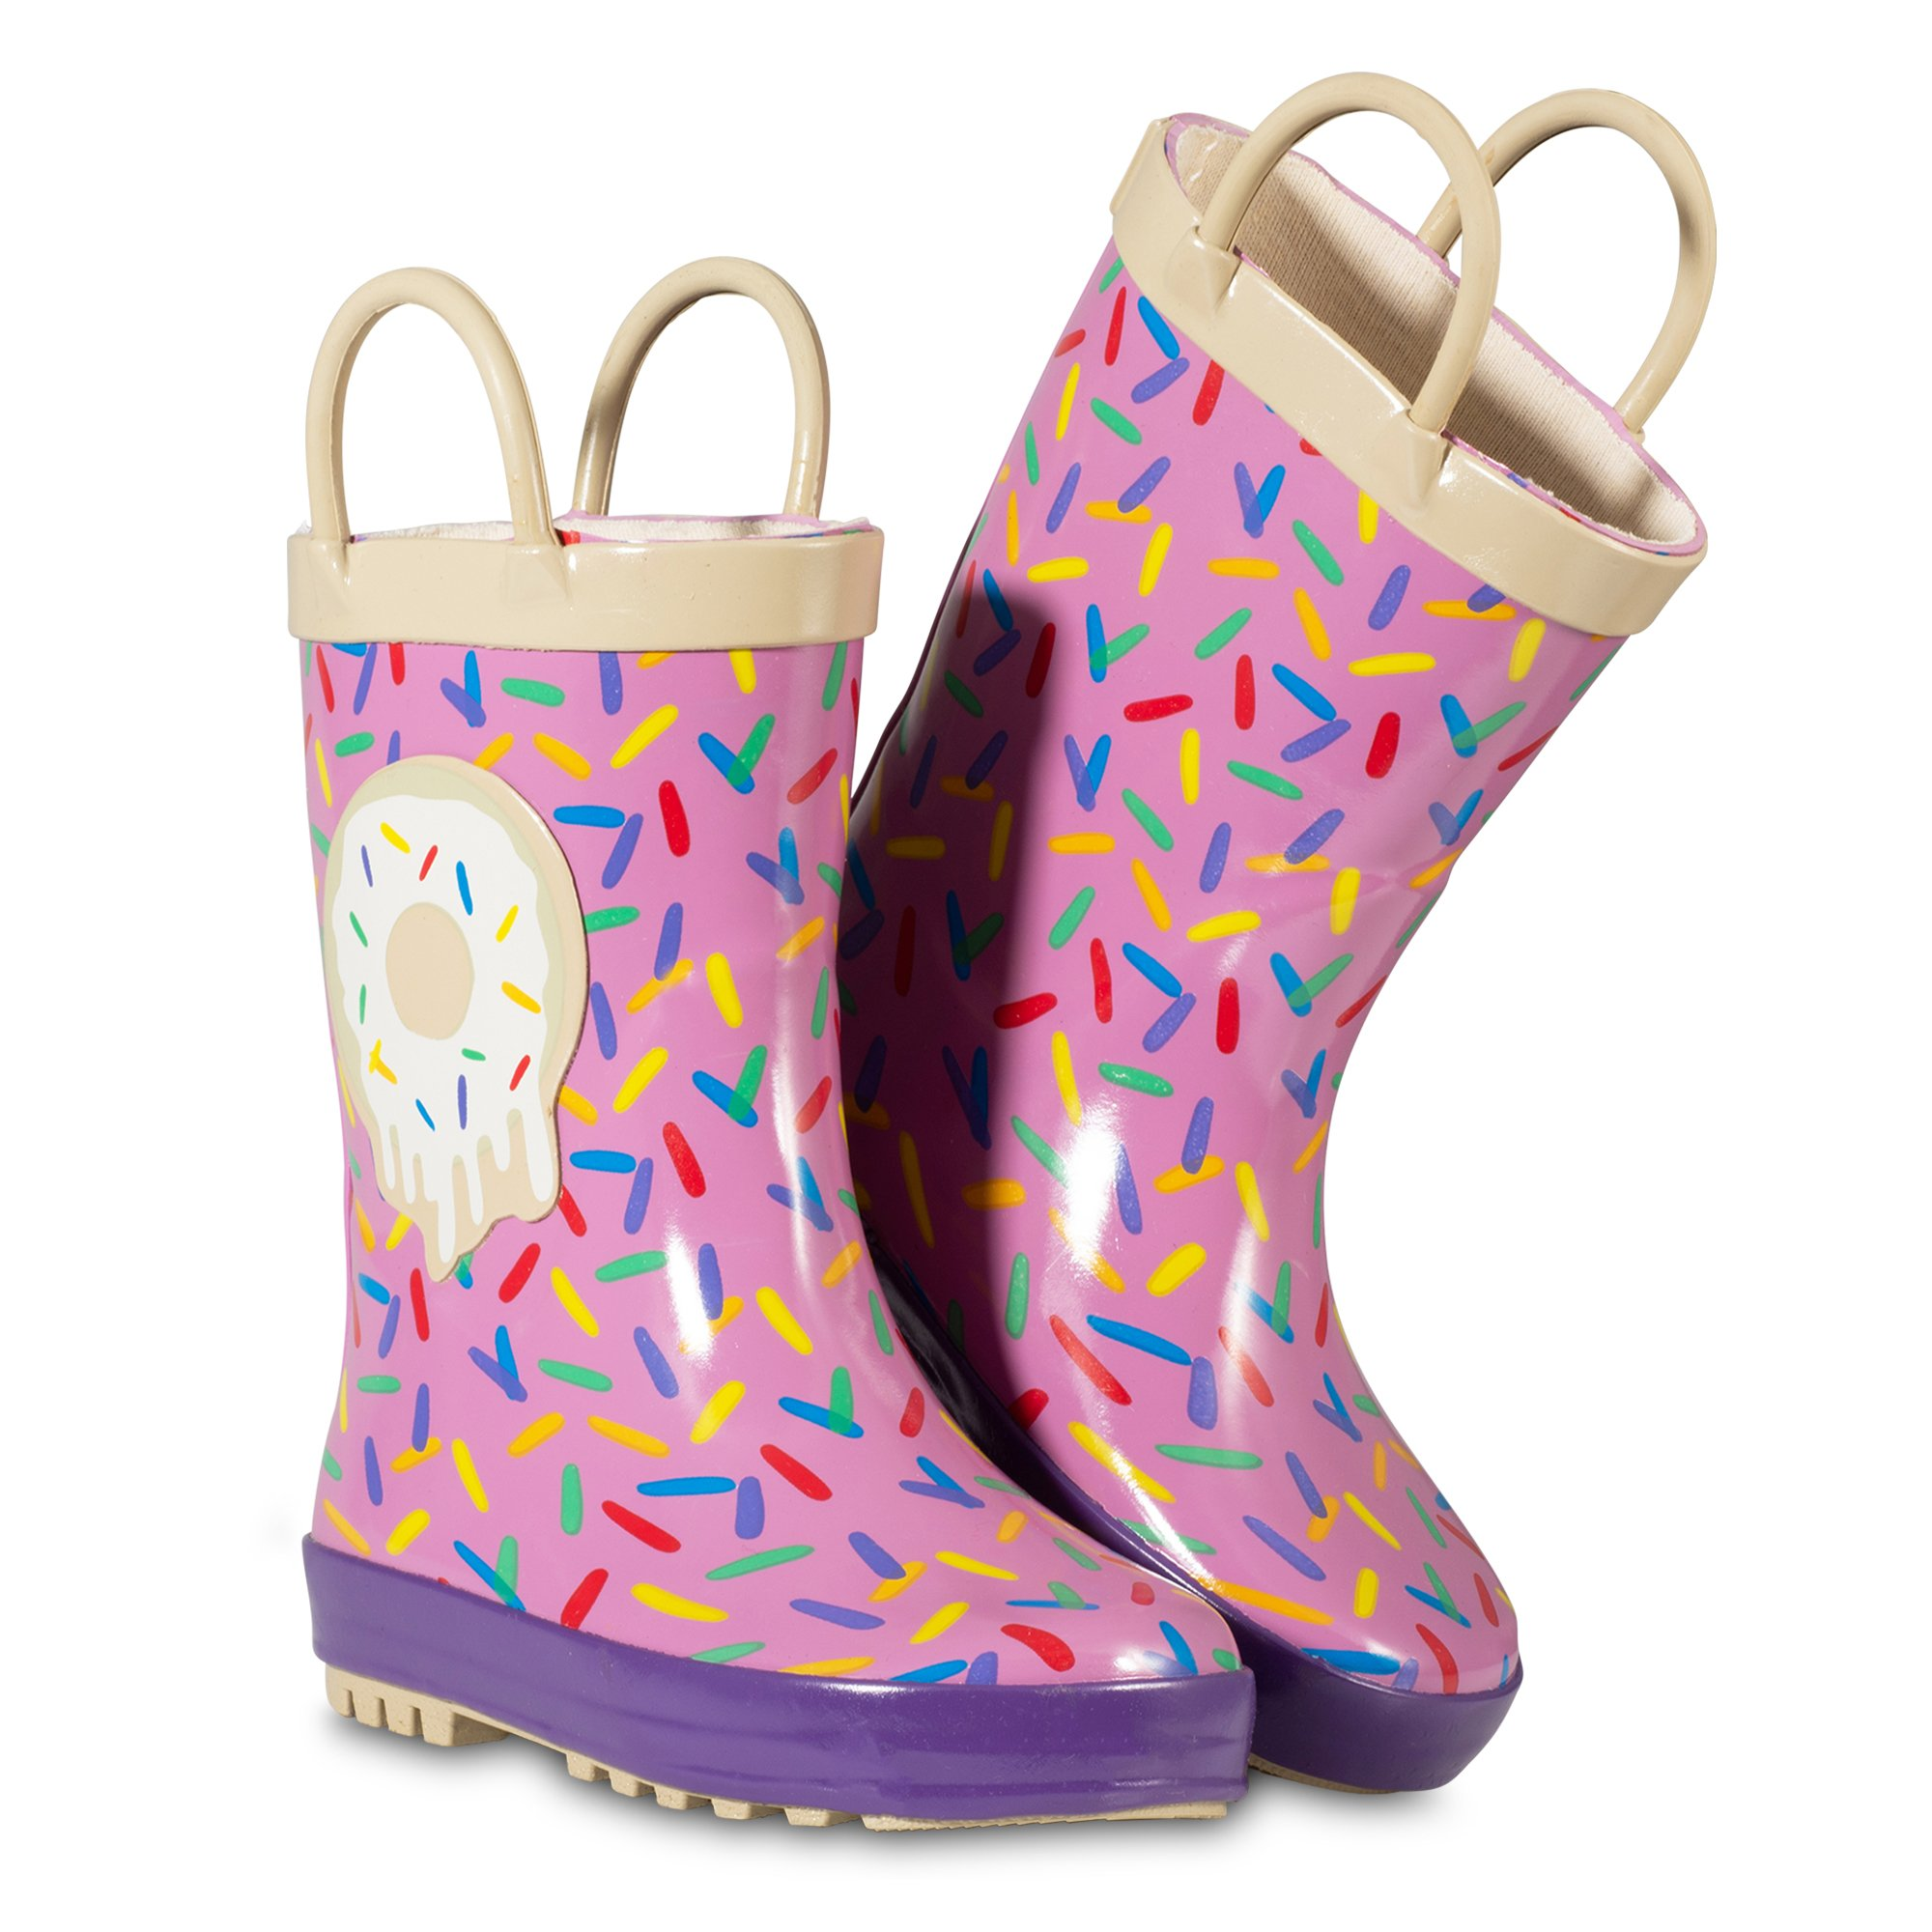 ZOOGS Children's Rubber Rain Boots, Little Kids & Toddler, Boys & Girls Patterns by ZOOGS (Image #3)